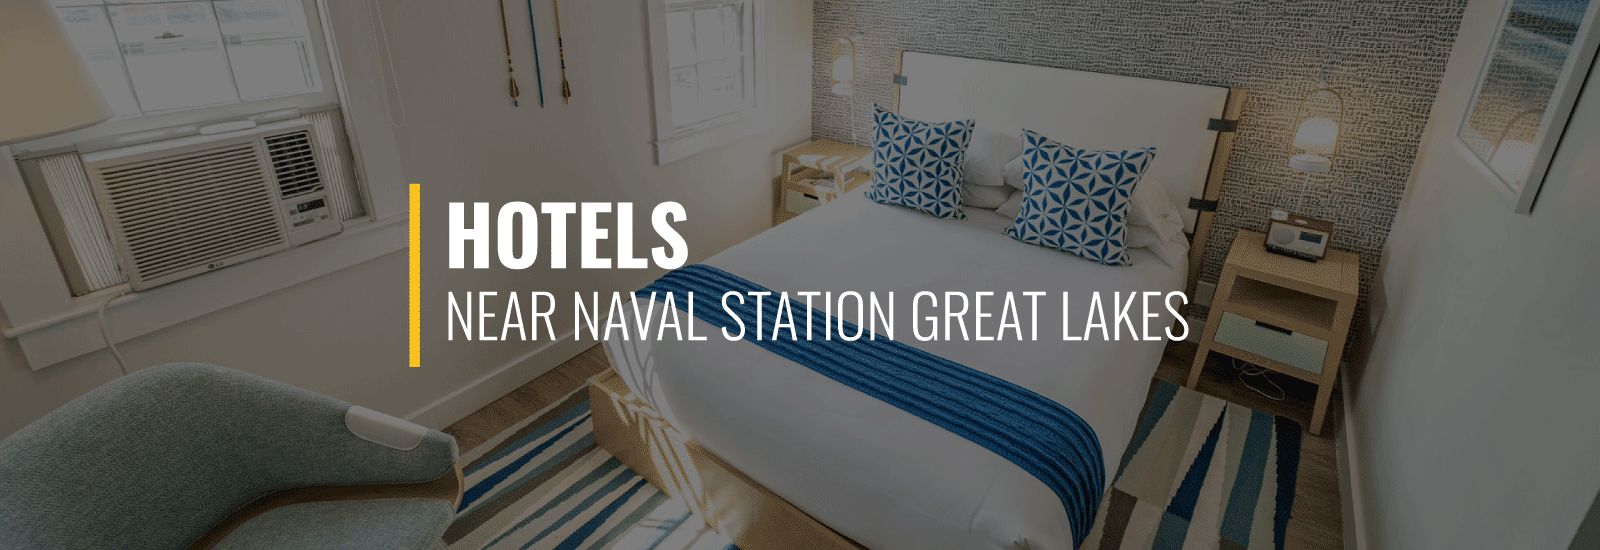 Hotels Near Naval Station Great Lakes